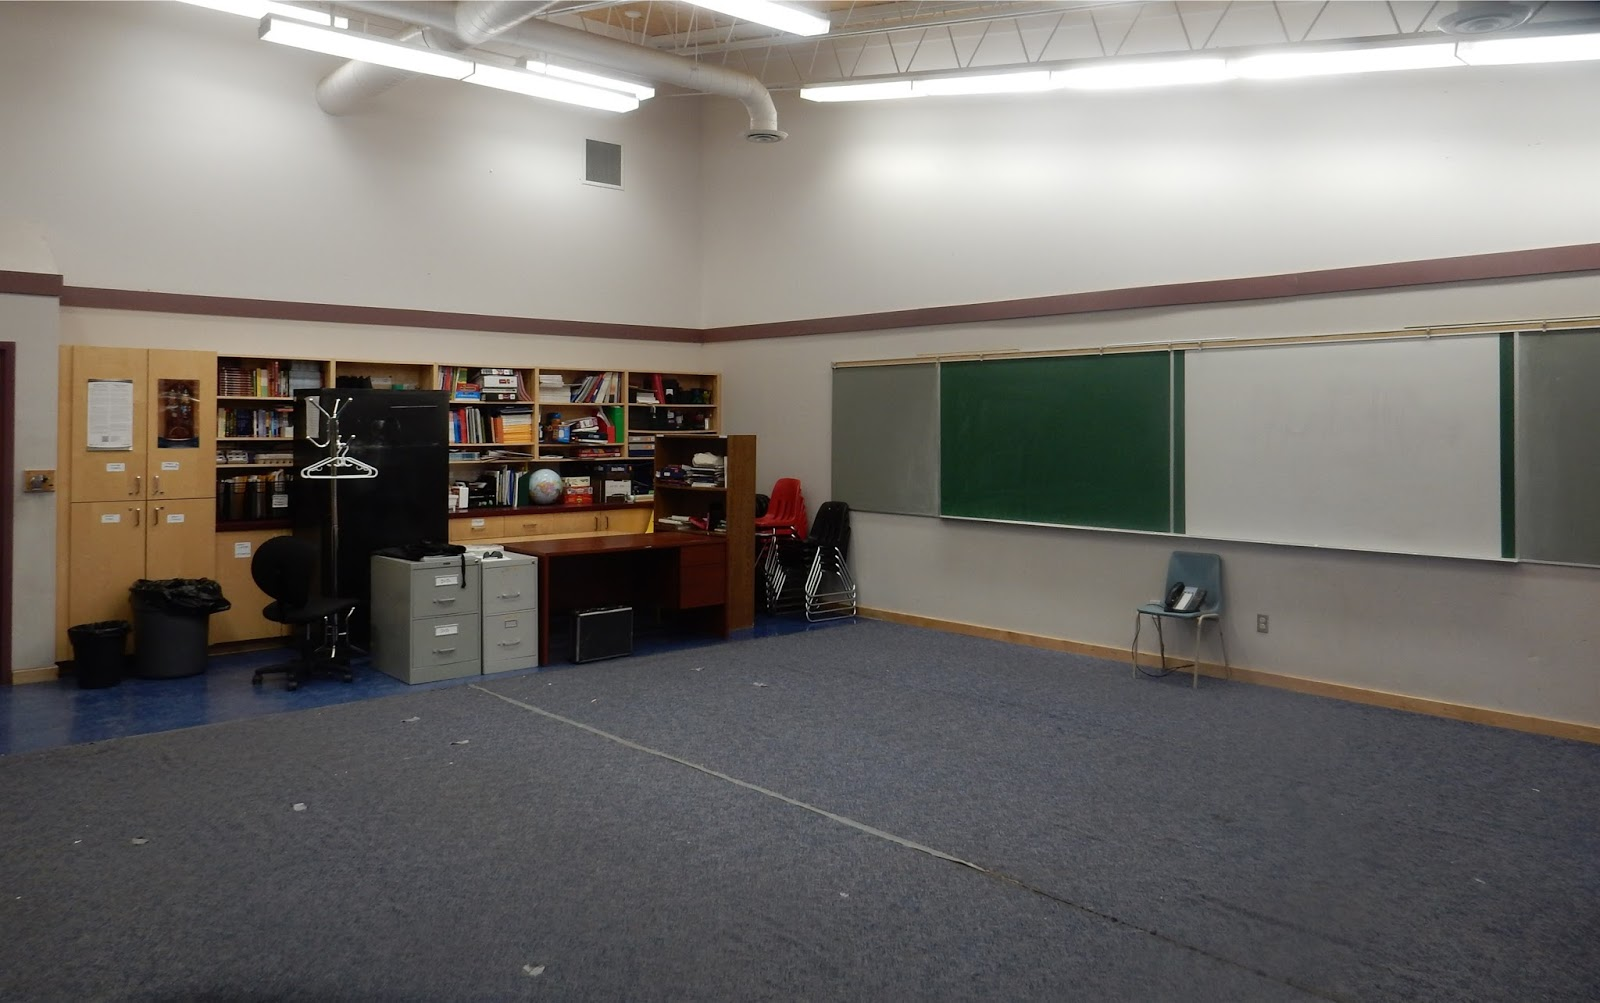 I Spent The Weekend Going Through My Classroom, Throwing Out Unclaimed  Classwork U0026 Tests, And Moving Furniture Off The Carpet. All The Musical  Instruments ...